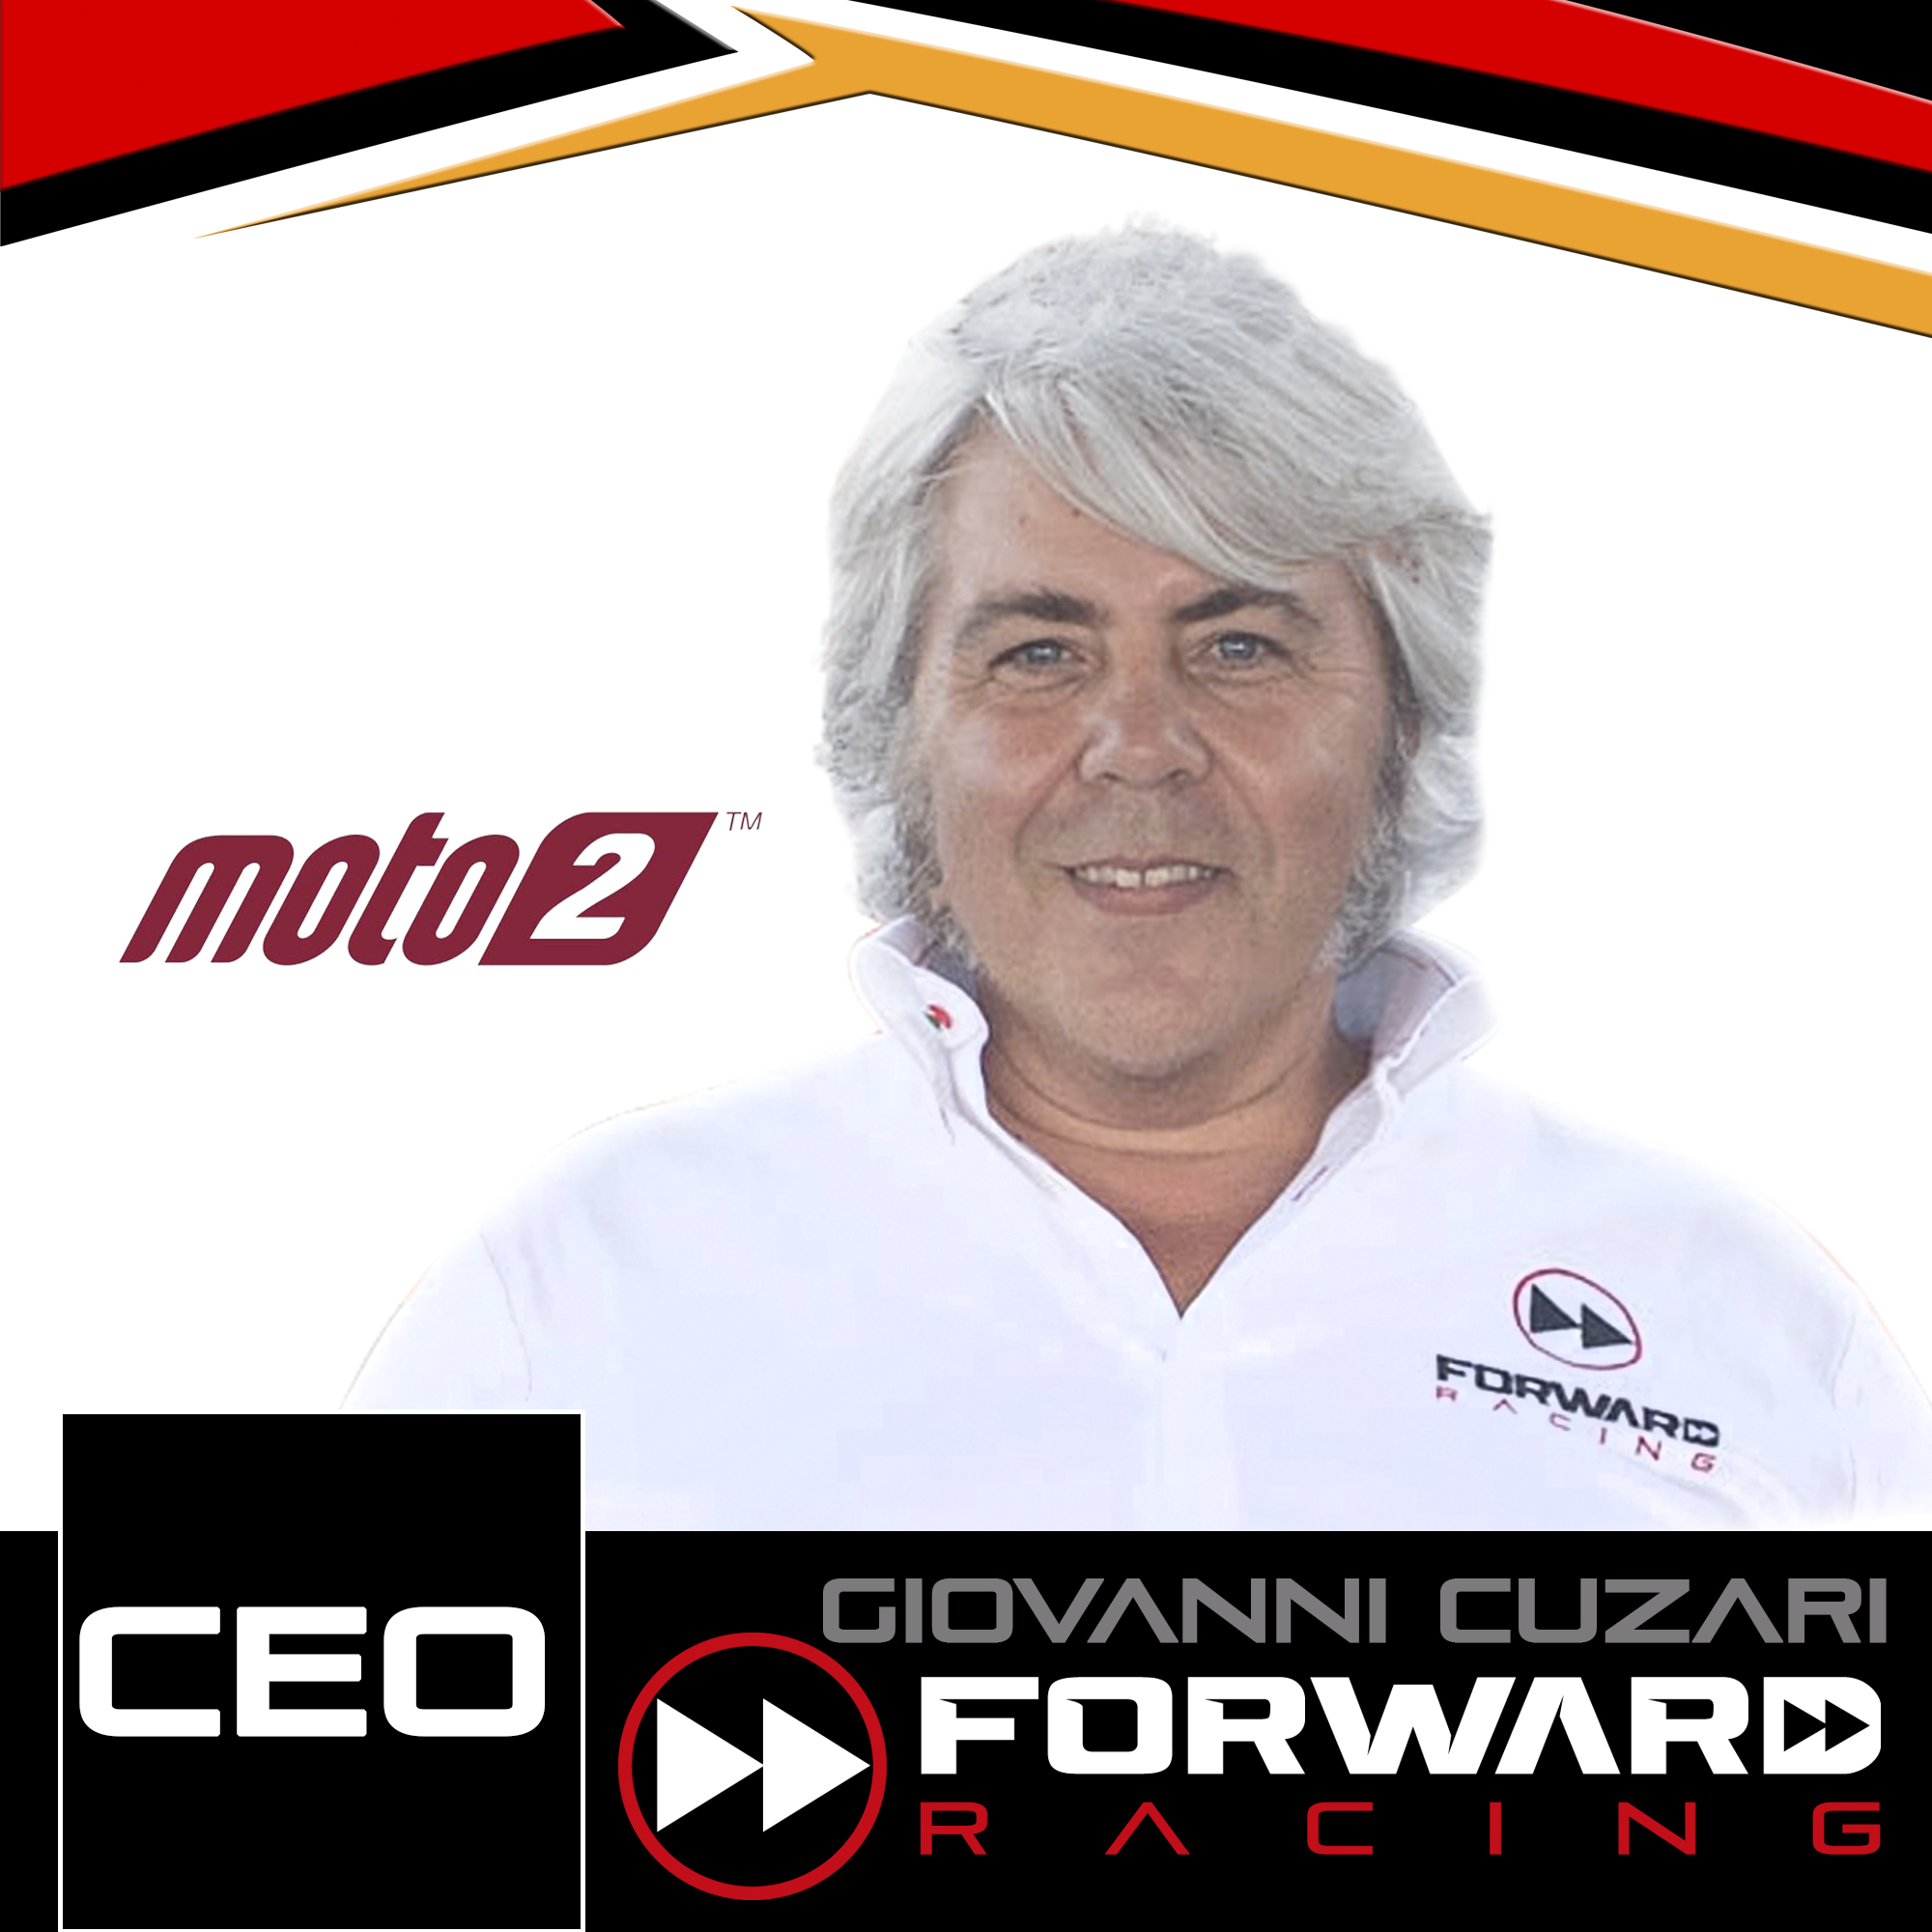 """- Giovanni Cuzari""""I'm very happy to work again with Suter Industries, which were already a vital part at the beginning of our Moto2 experience. This is a return to the origins; looking back to the past I see not only the same bike supplier but also Milena Koerner, who started the Moto2 experience with us. I still have very good memories of these years, the start of everything, a period of hard work that has rewarded us with fantastic results. During my latest visit to the headquarters, 7 years after my last trip to Turbenthal, I saw great progress and a lot of investments made by this company and I think that Suter Industries is the only engineering in the championship that could bring important updates race by race."""""""